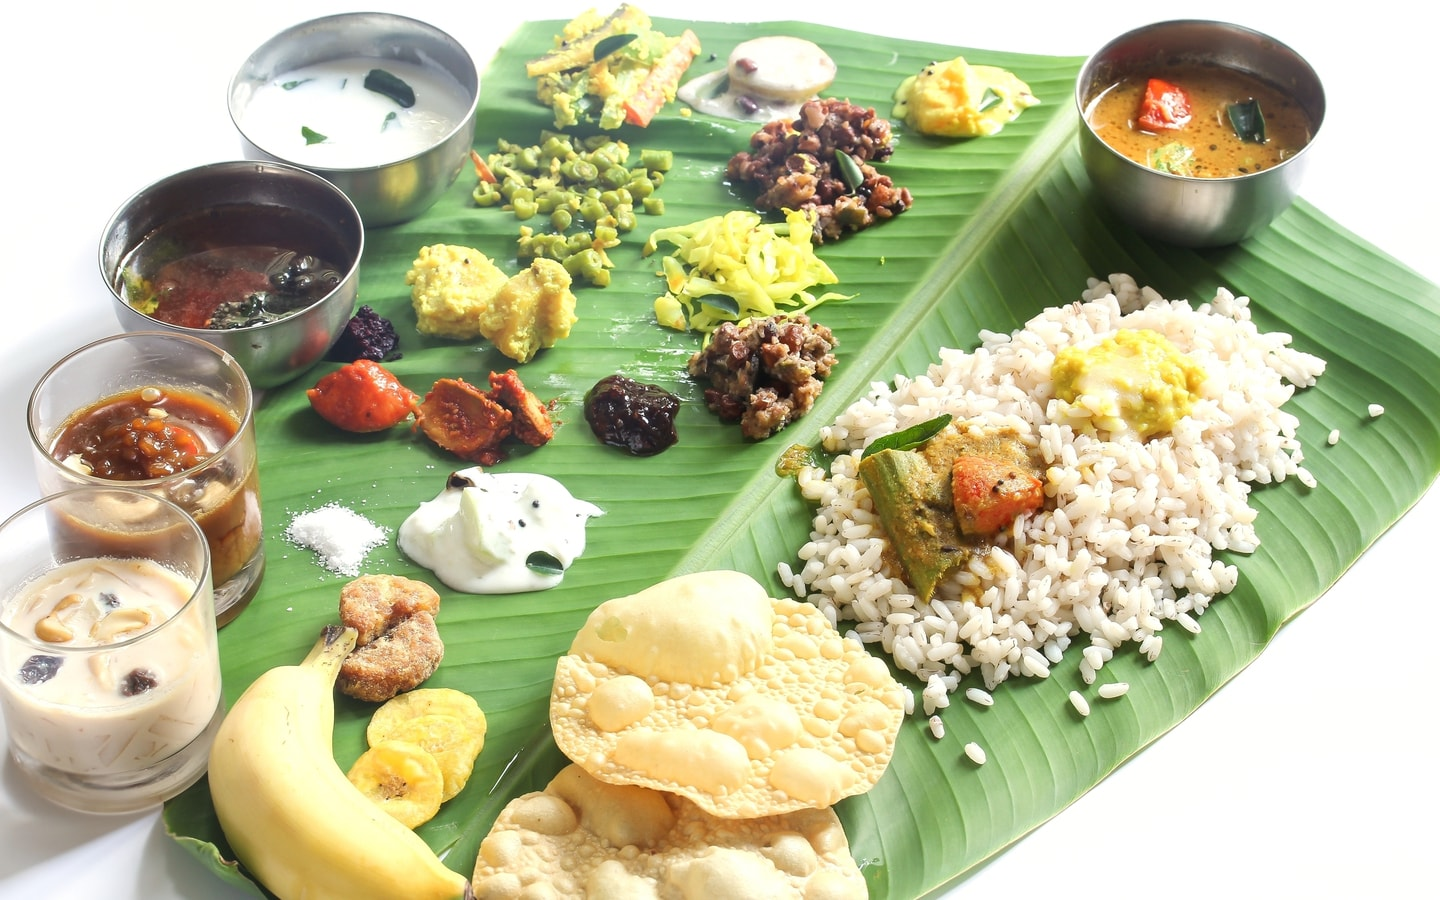 Typical Kerala sadya with over 26 dishes